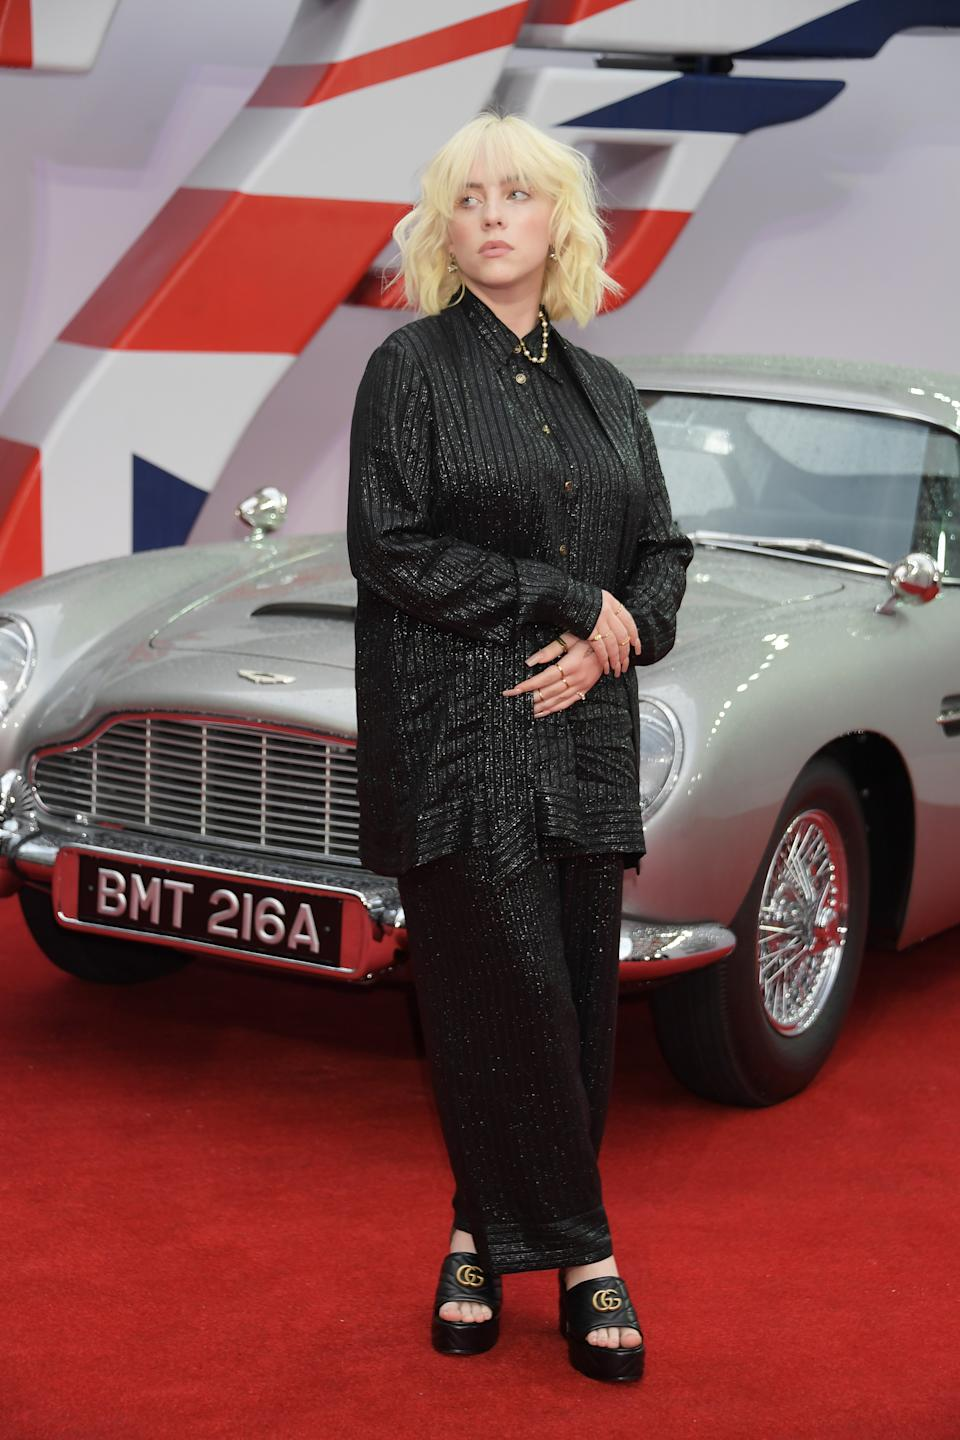 Billie Elish composed the theme song for the much-delayed James Bond 007 movie. (Getty Images)